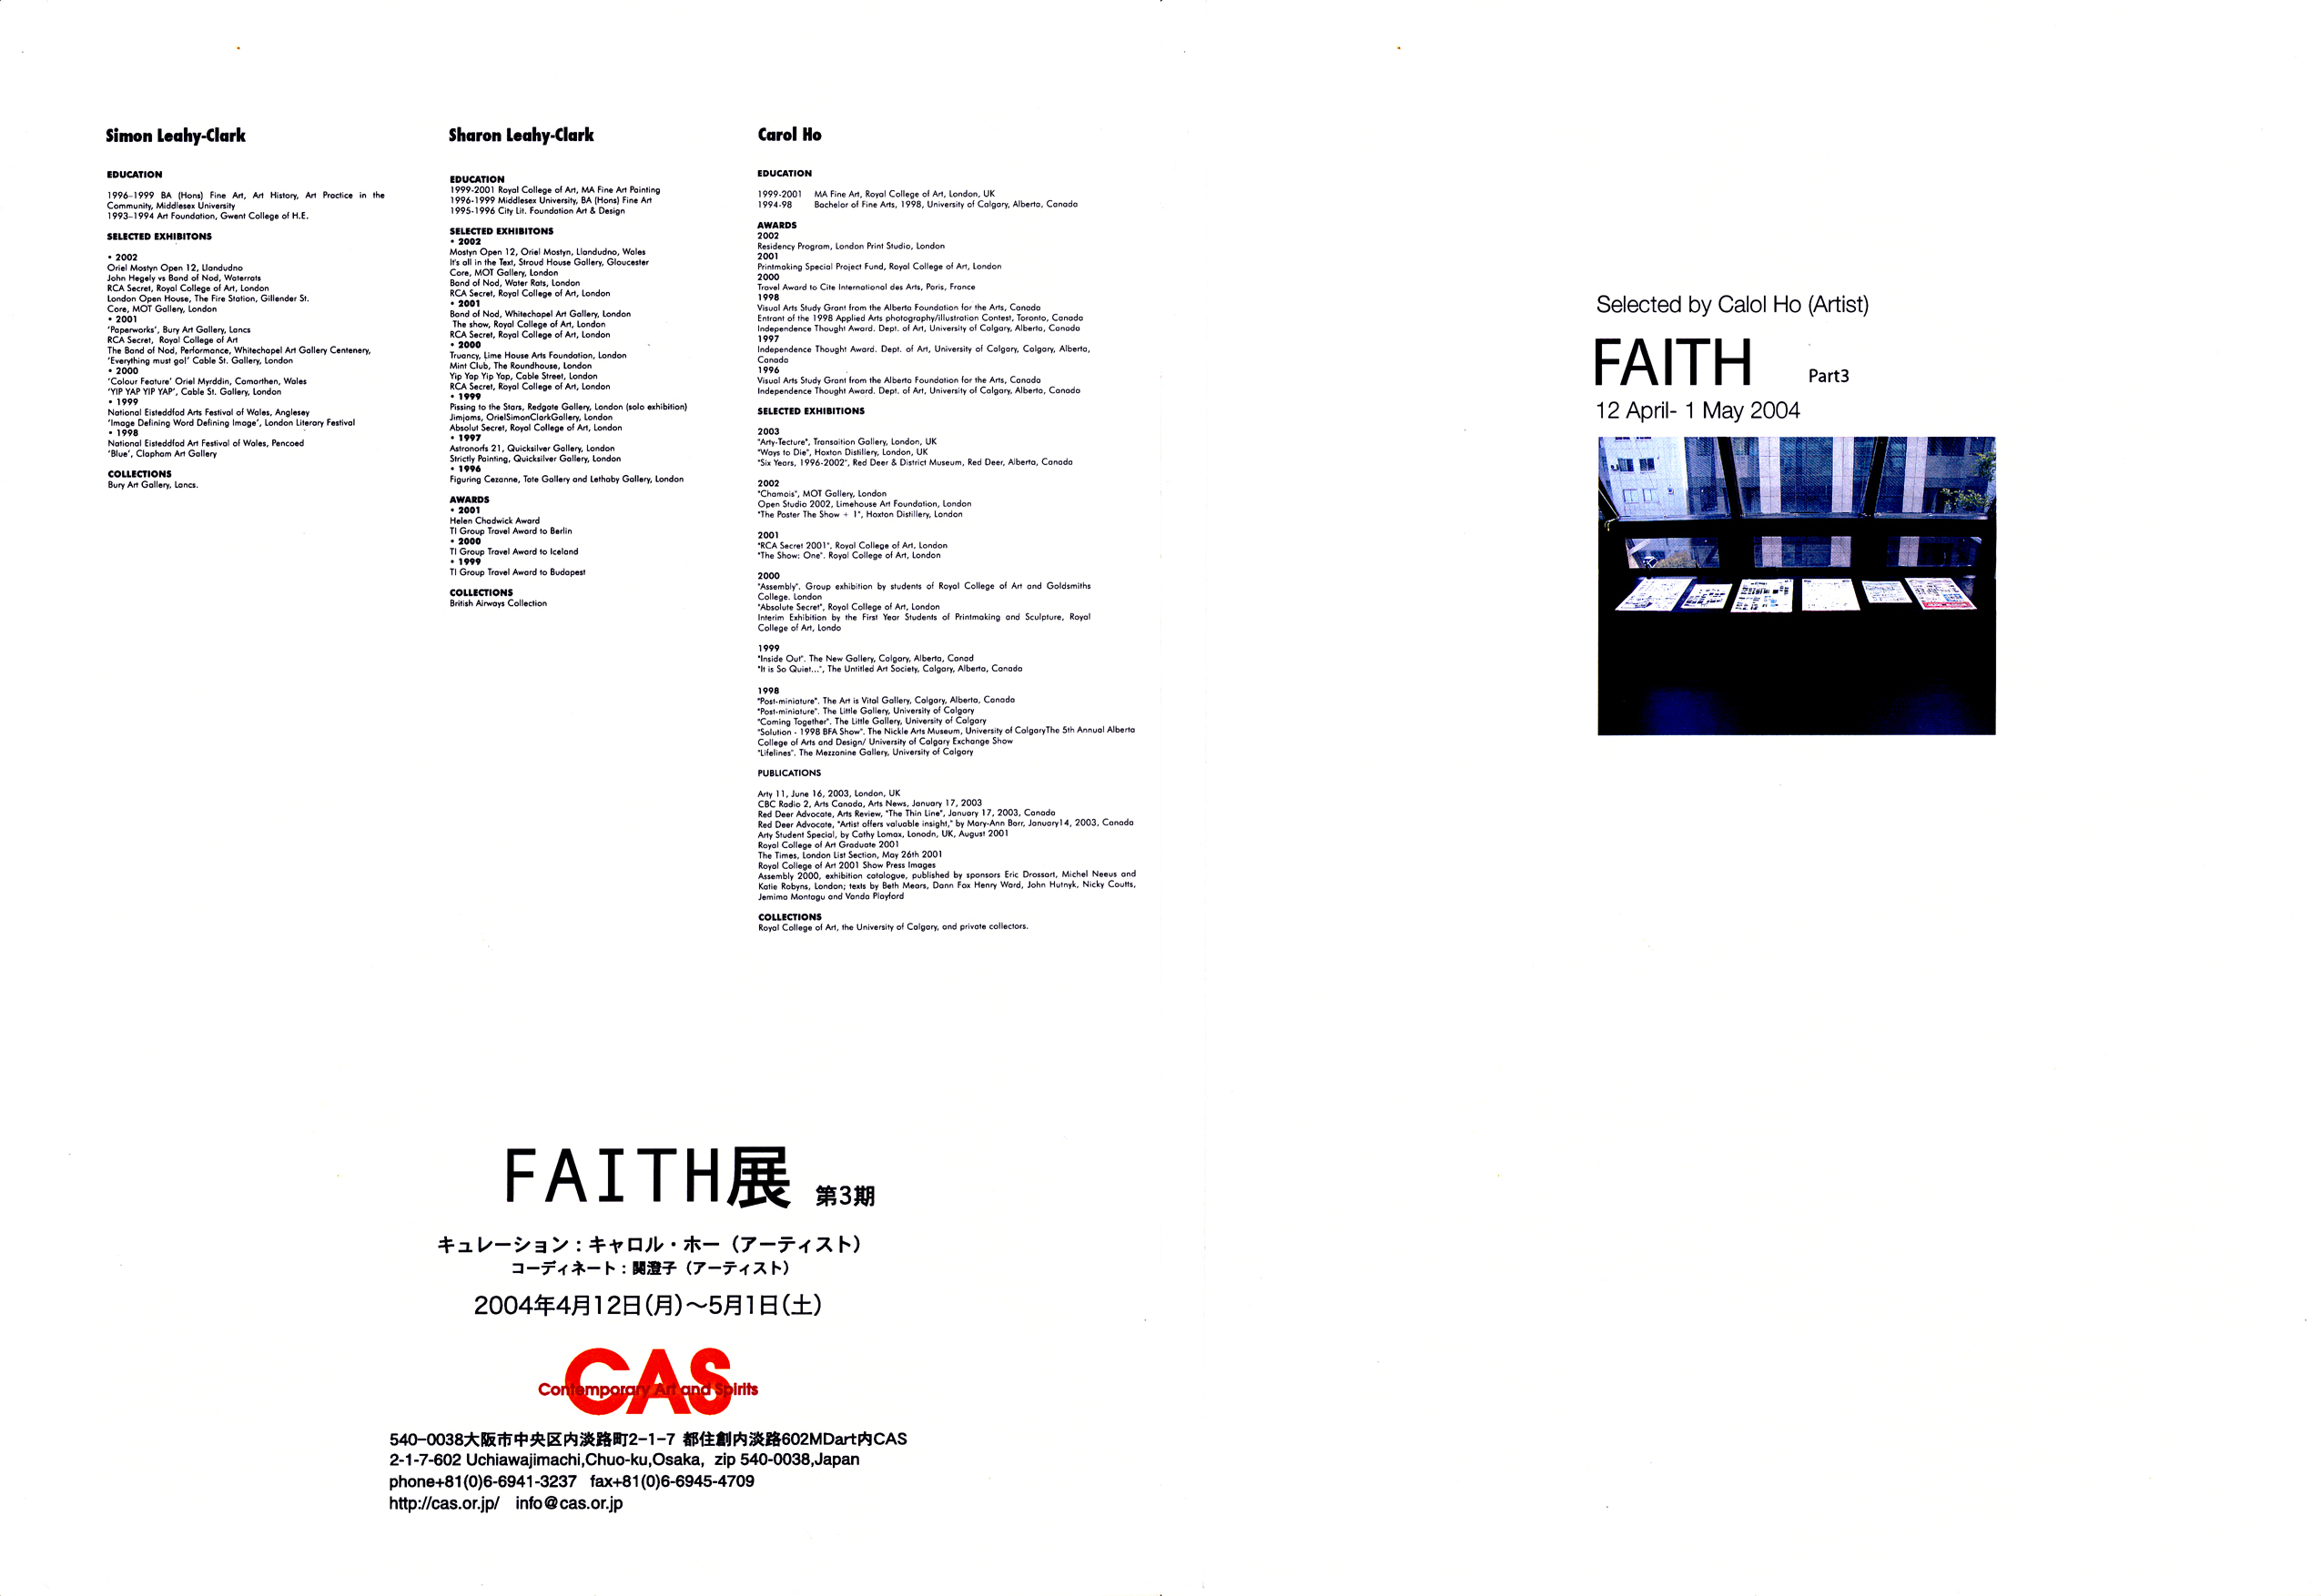 FAITH, OSAKA, APRIL 12 2004